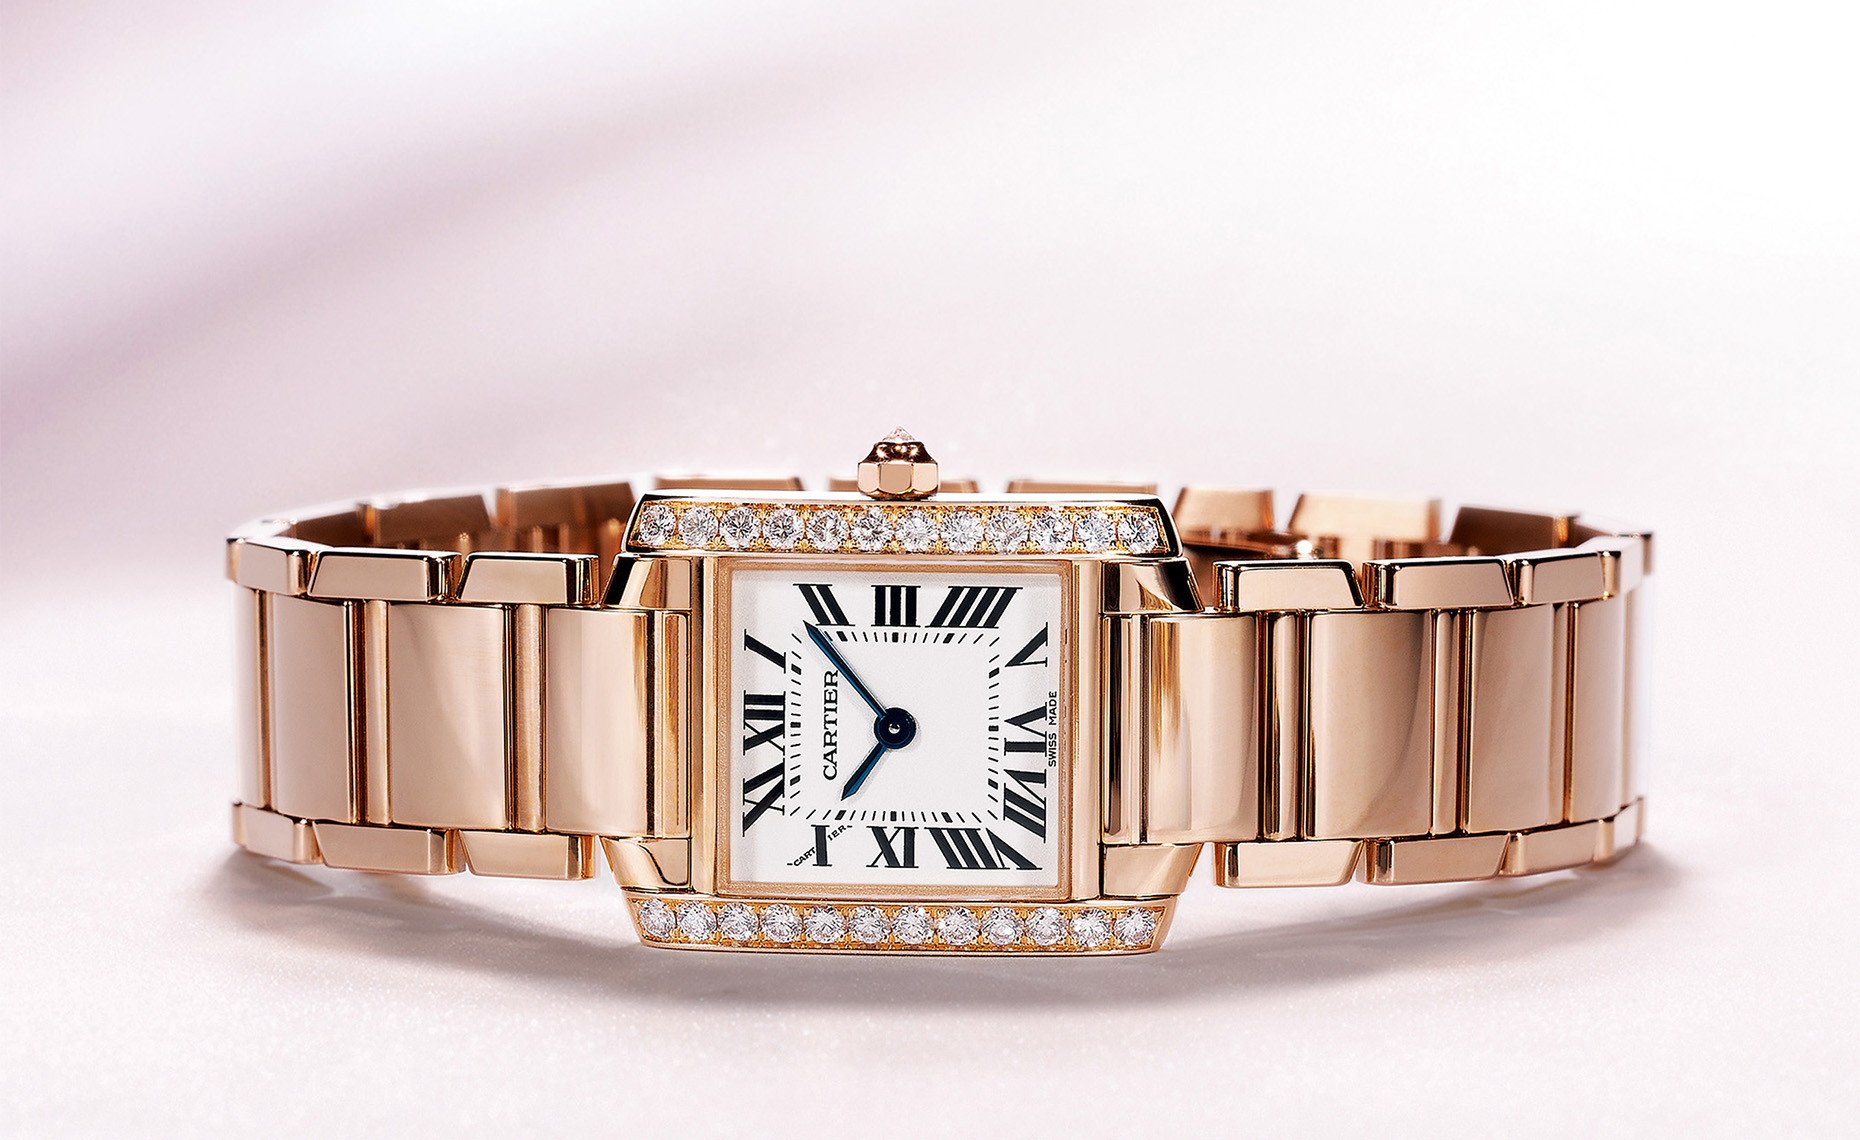 CARTIER_PG_5118601140_SQ